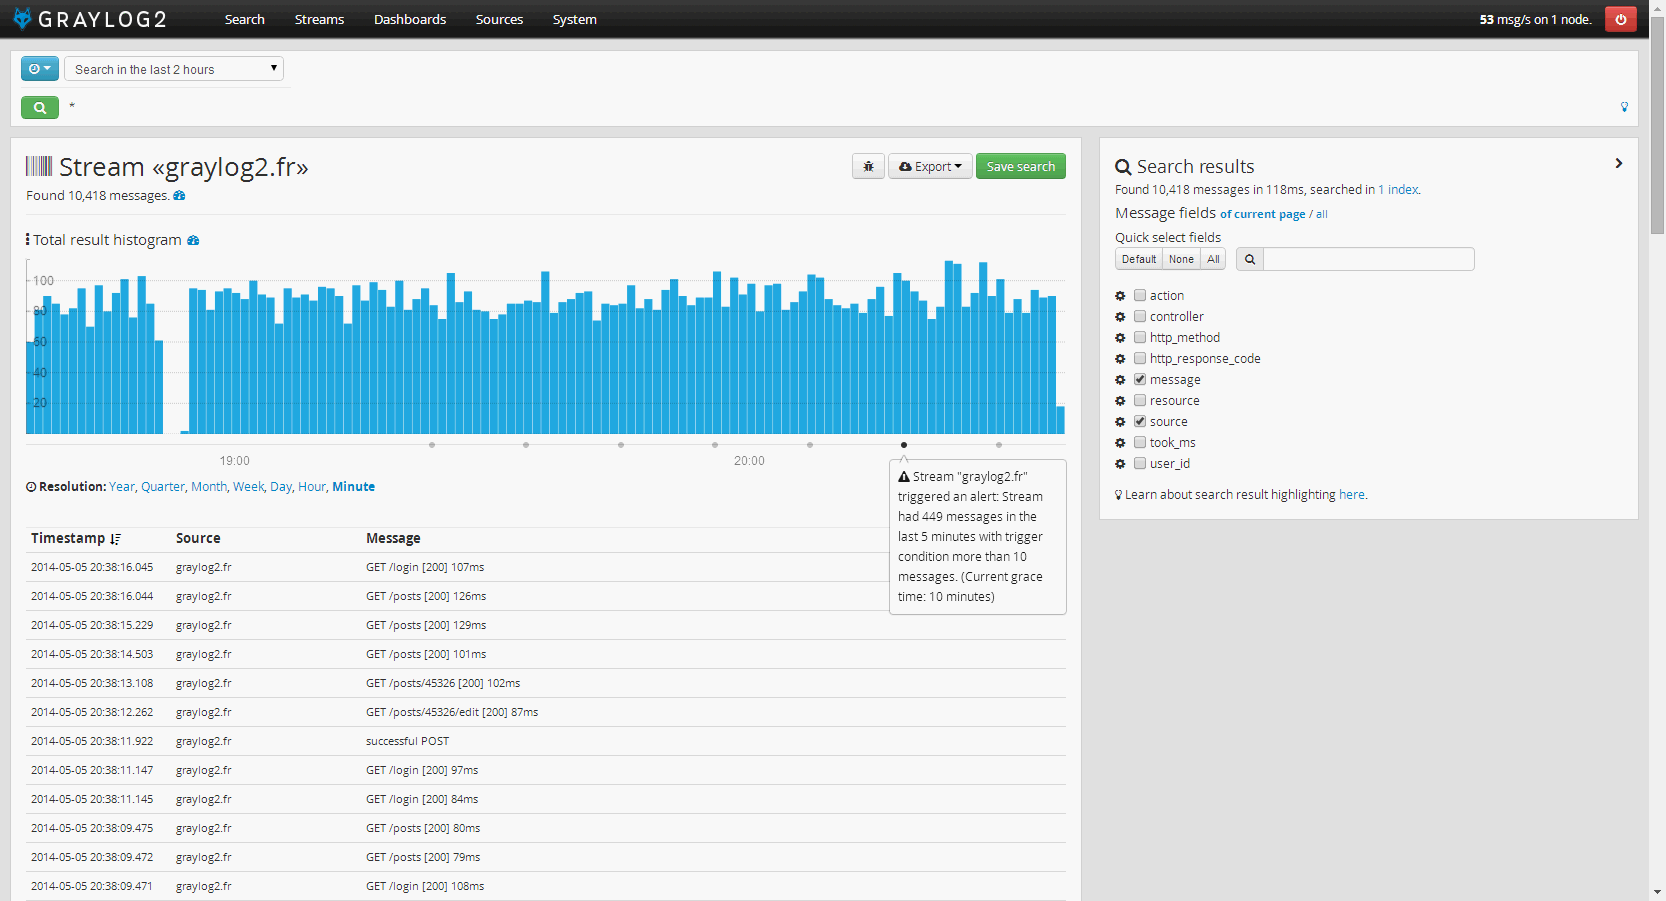 graylog2_notif_alert